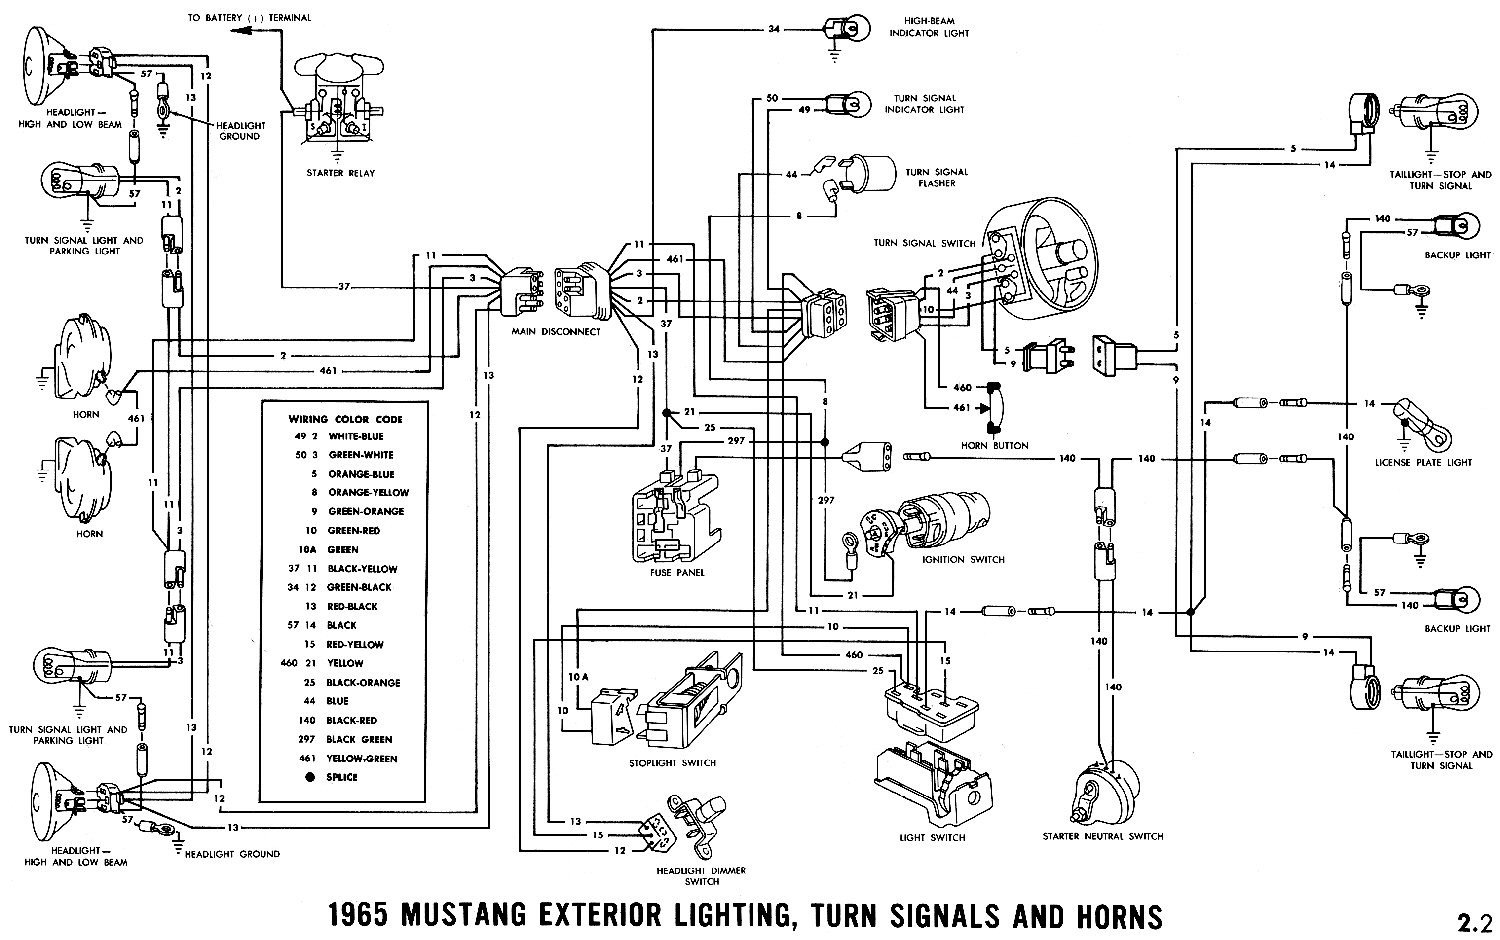 1965 mustang ignition switch wiring diagram 1966 mustang wiring diagram new 1968 mustang wiring diagrams evolving software with 66 diagram 1p 1968 mustang headlight switch wiring diagram wiring data \u2022